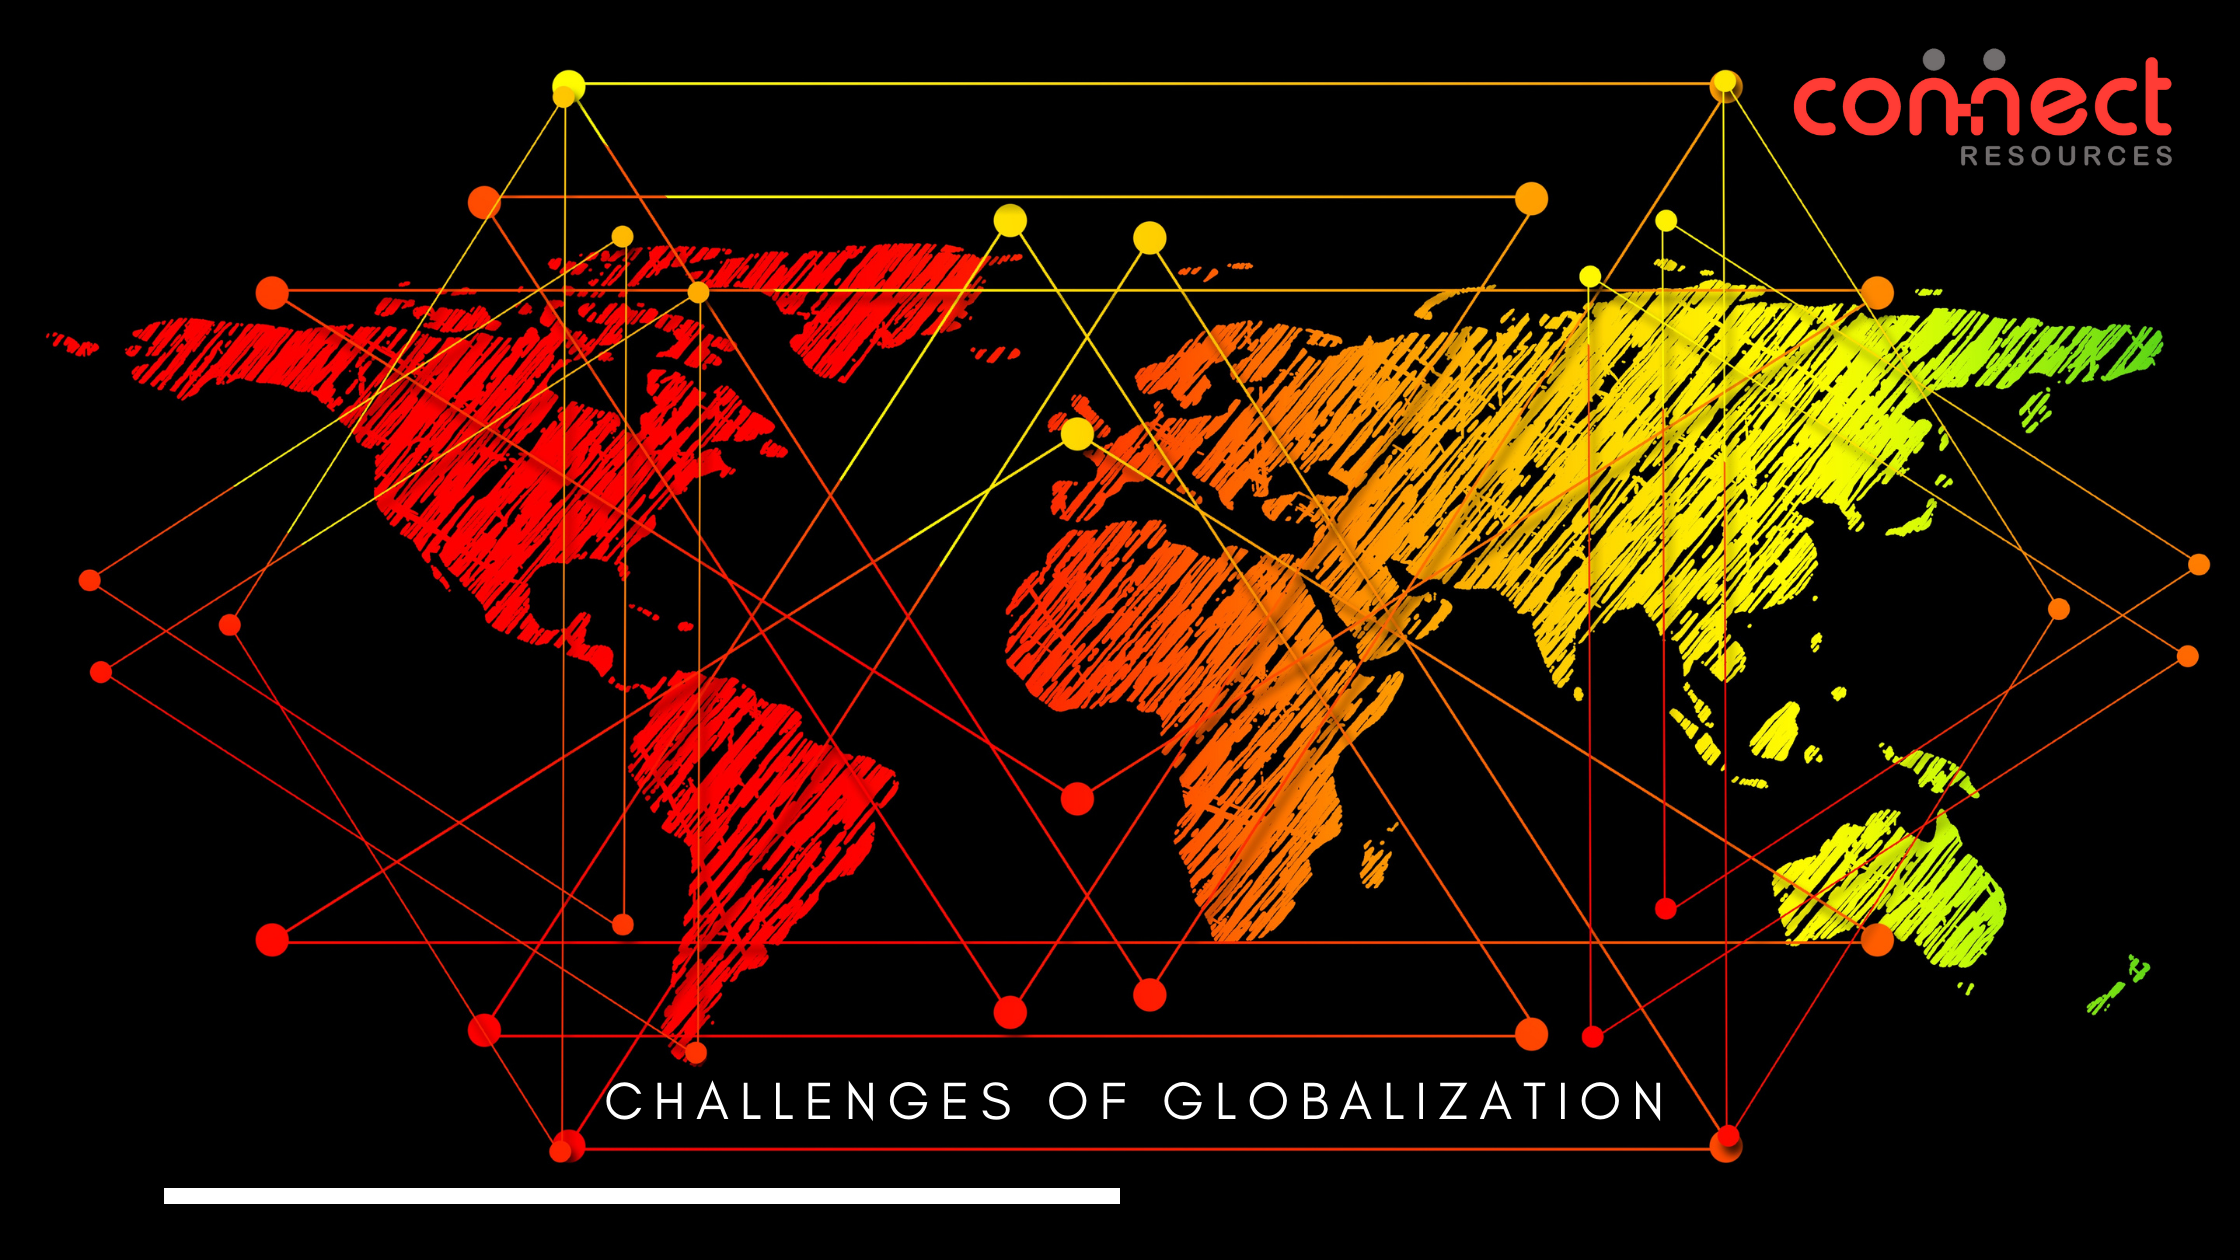 challenges of globalization-connectresources